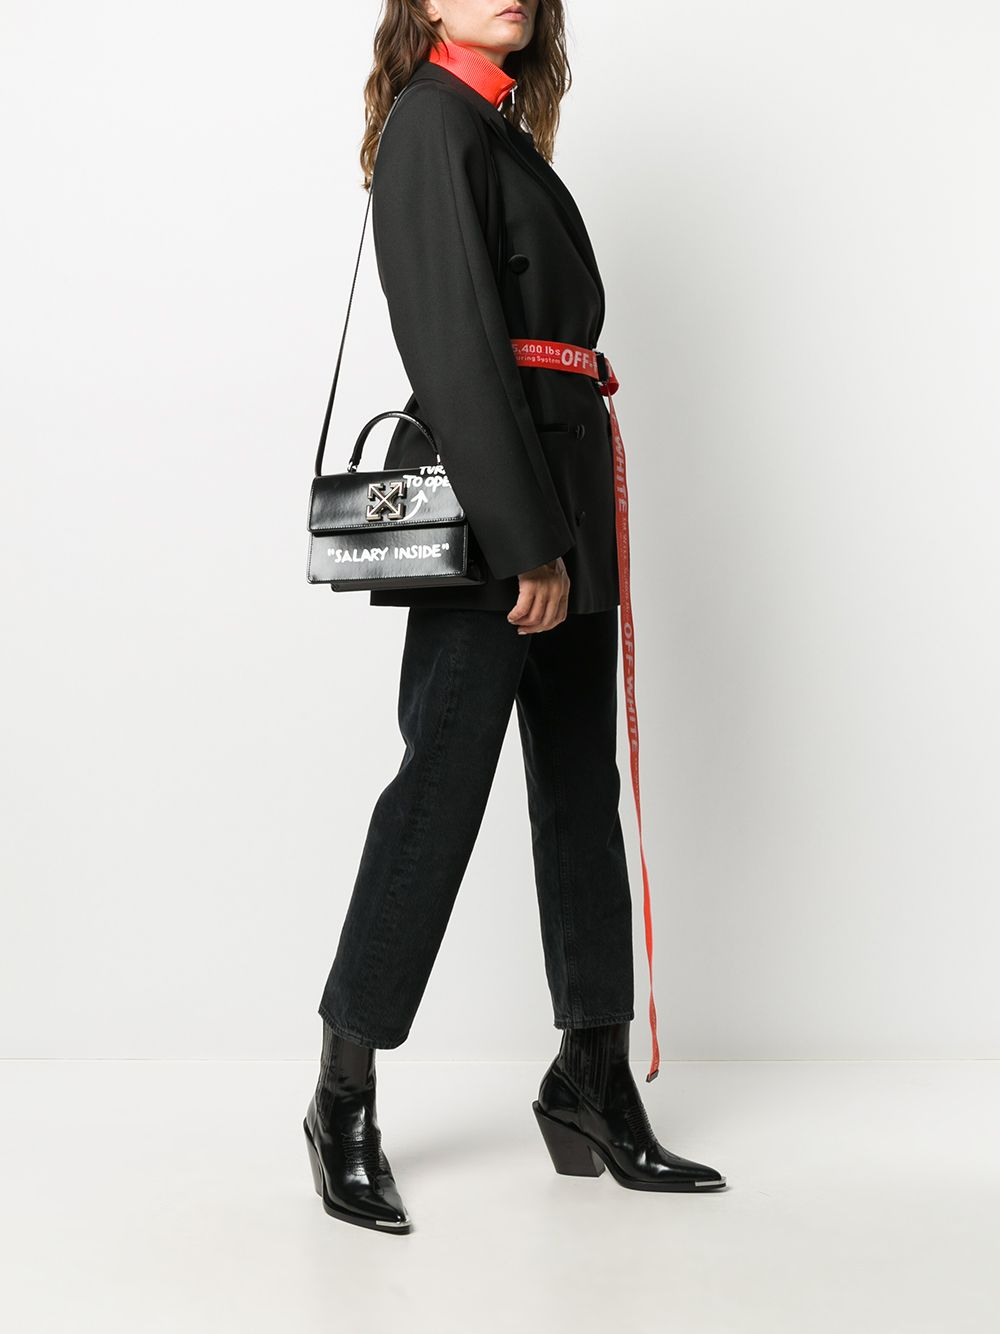 OFF-WHITE Jitney 1.4 Salary Inside Shoulder Bag Black